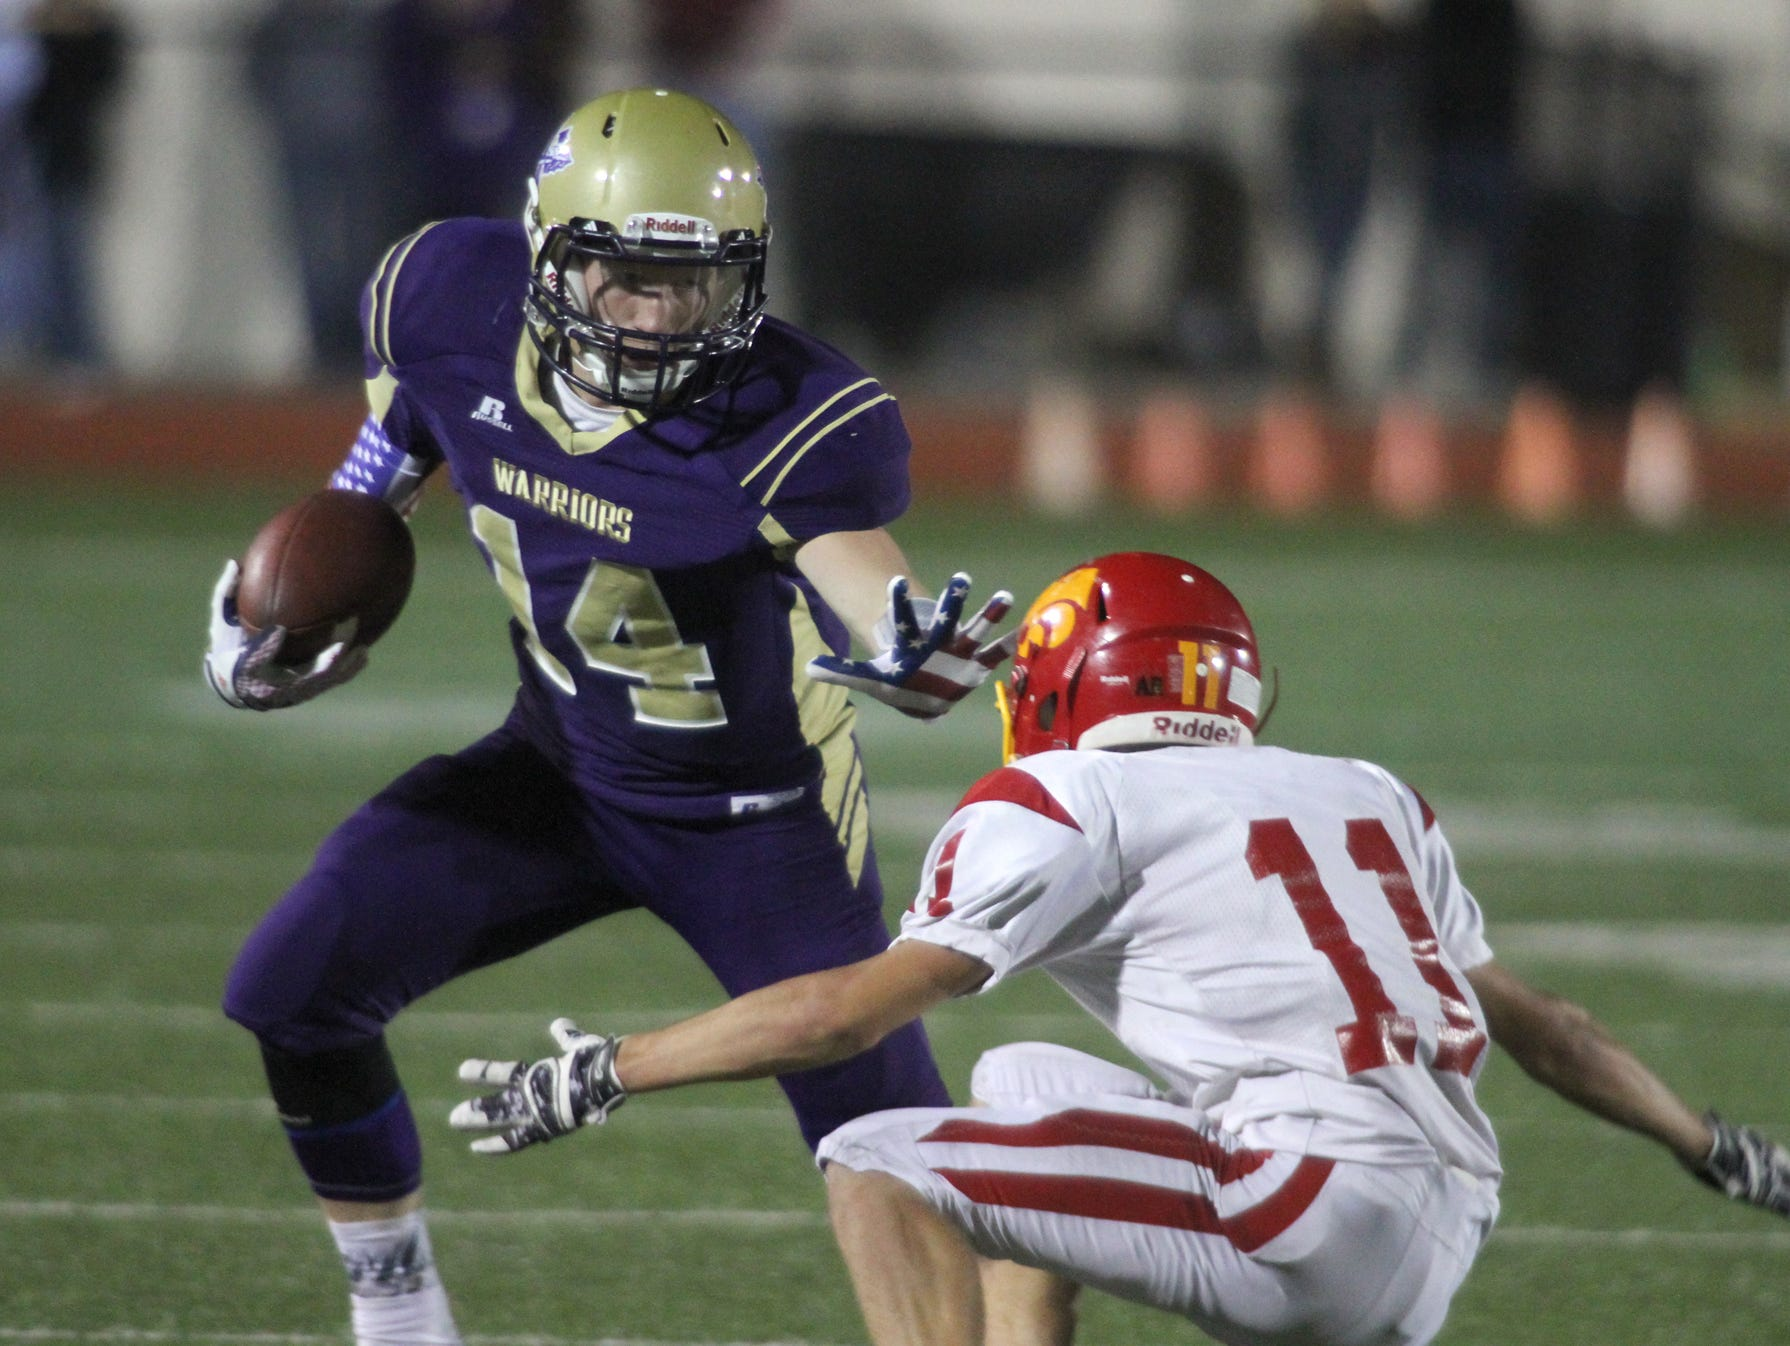 Norwalk senior Tyler Schamel tries to avoid Carlisle junior Dallas Wright. Norwalk hosted Carlisle in their Homecoming game Sept. 11, winning 23-16 with a touchdown in the final minute.